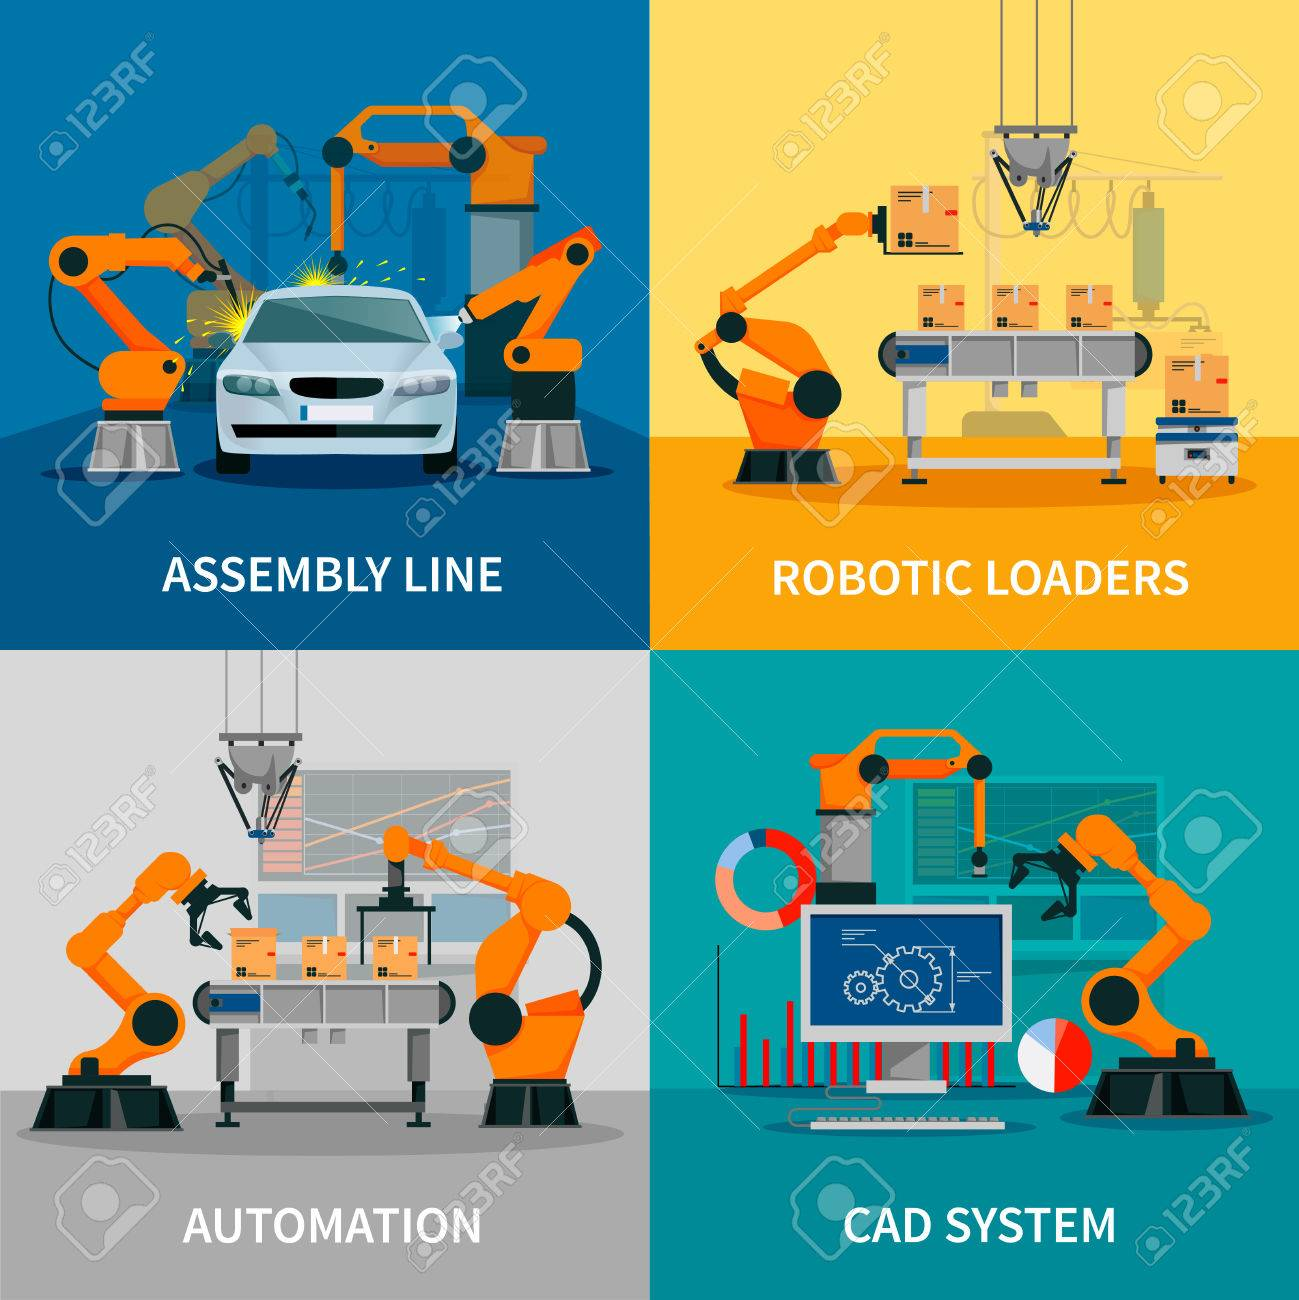 Automation concept icons set with assembly line and CAD system symbols flat isolated vector illustration - 56988115